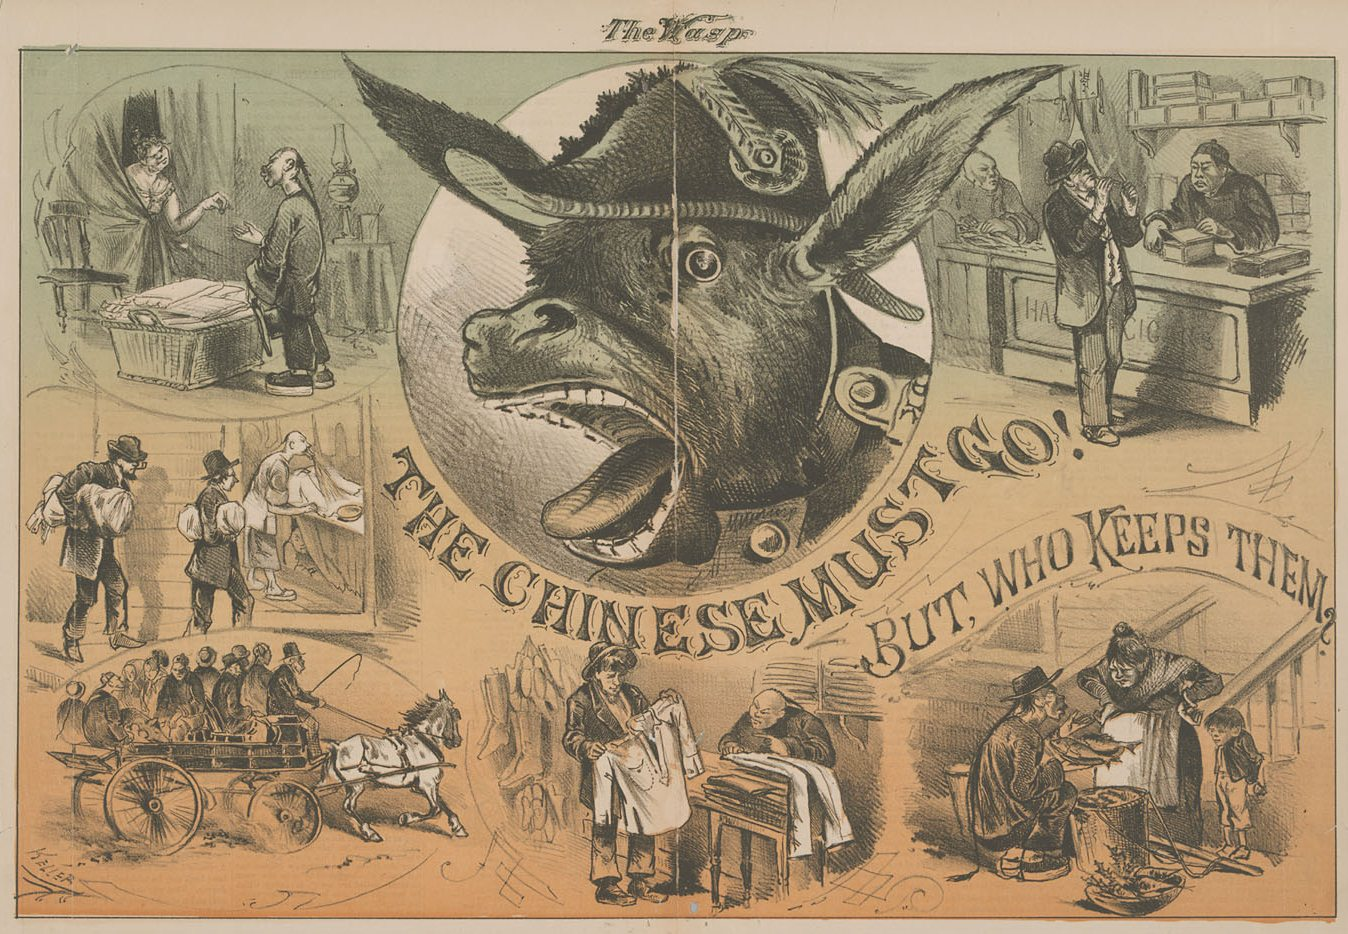 """The Chinese Must Go! But, Who Keeps Them?"" Illustration in The Wasp, v. 2, August 1877 - July 1878. From The Bancroft Library The University of California Berkeley."